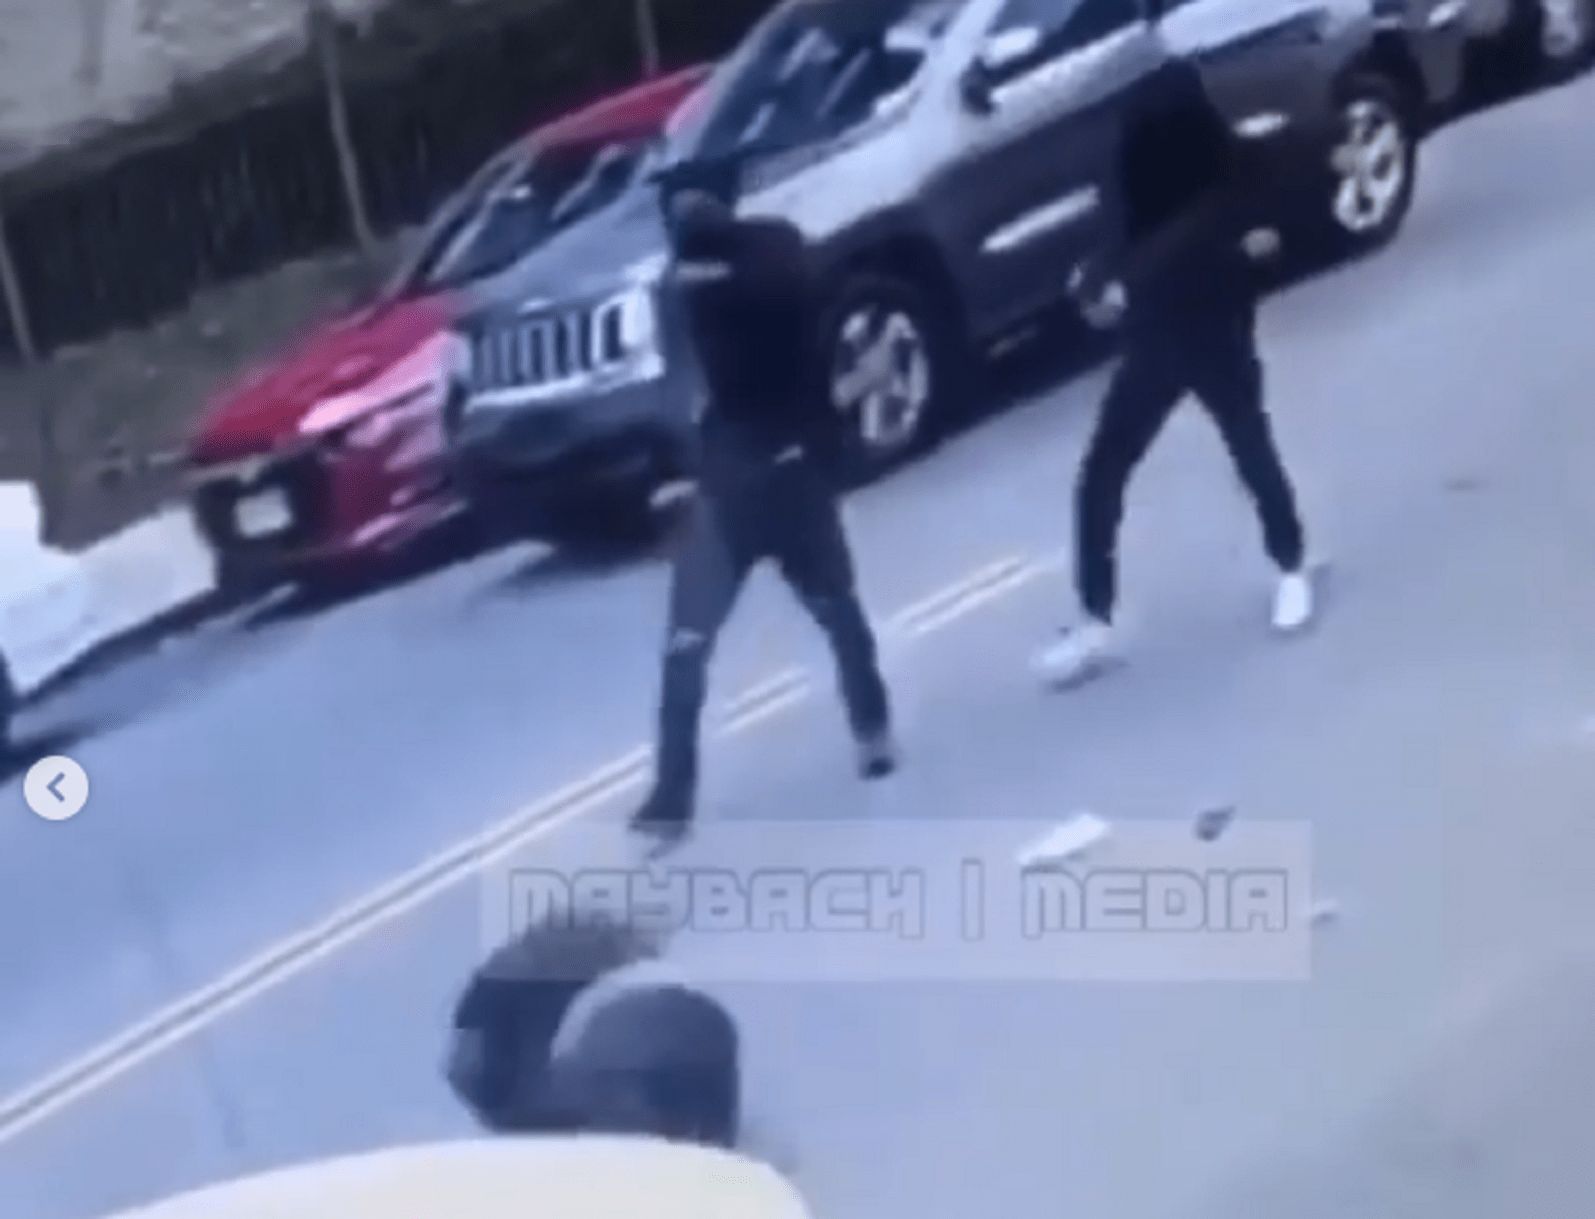 New Jersey Rapper TrippleBeanz Gunned Down In Cold Blood By Two Mask Men (Video)